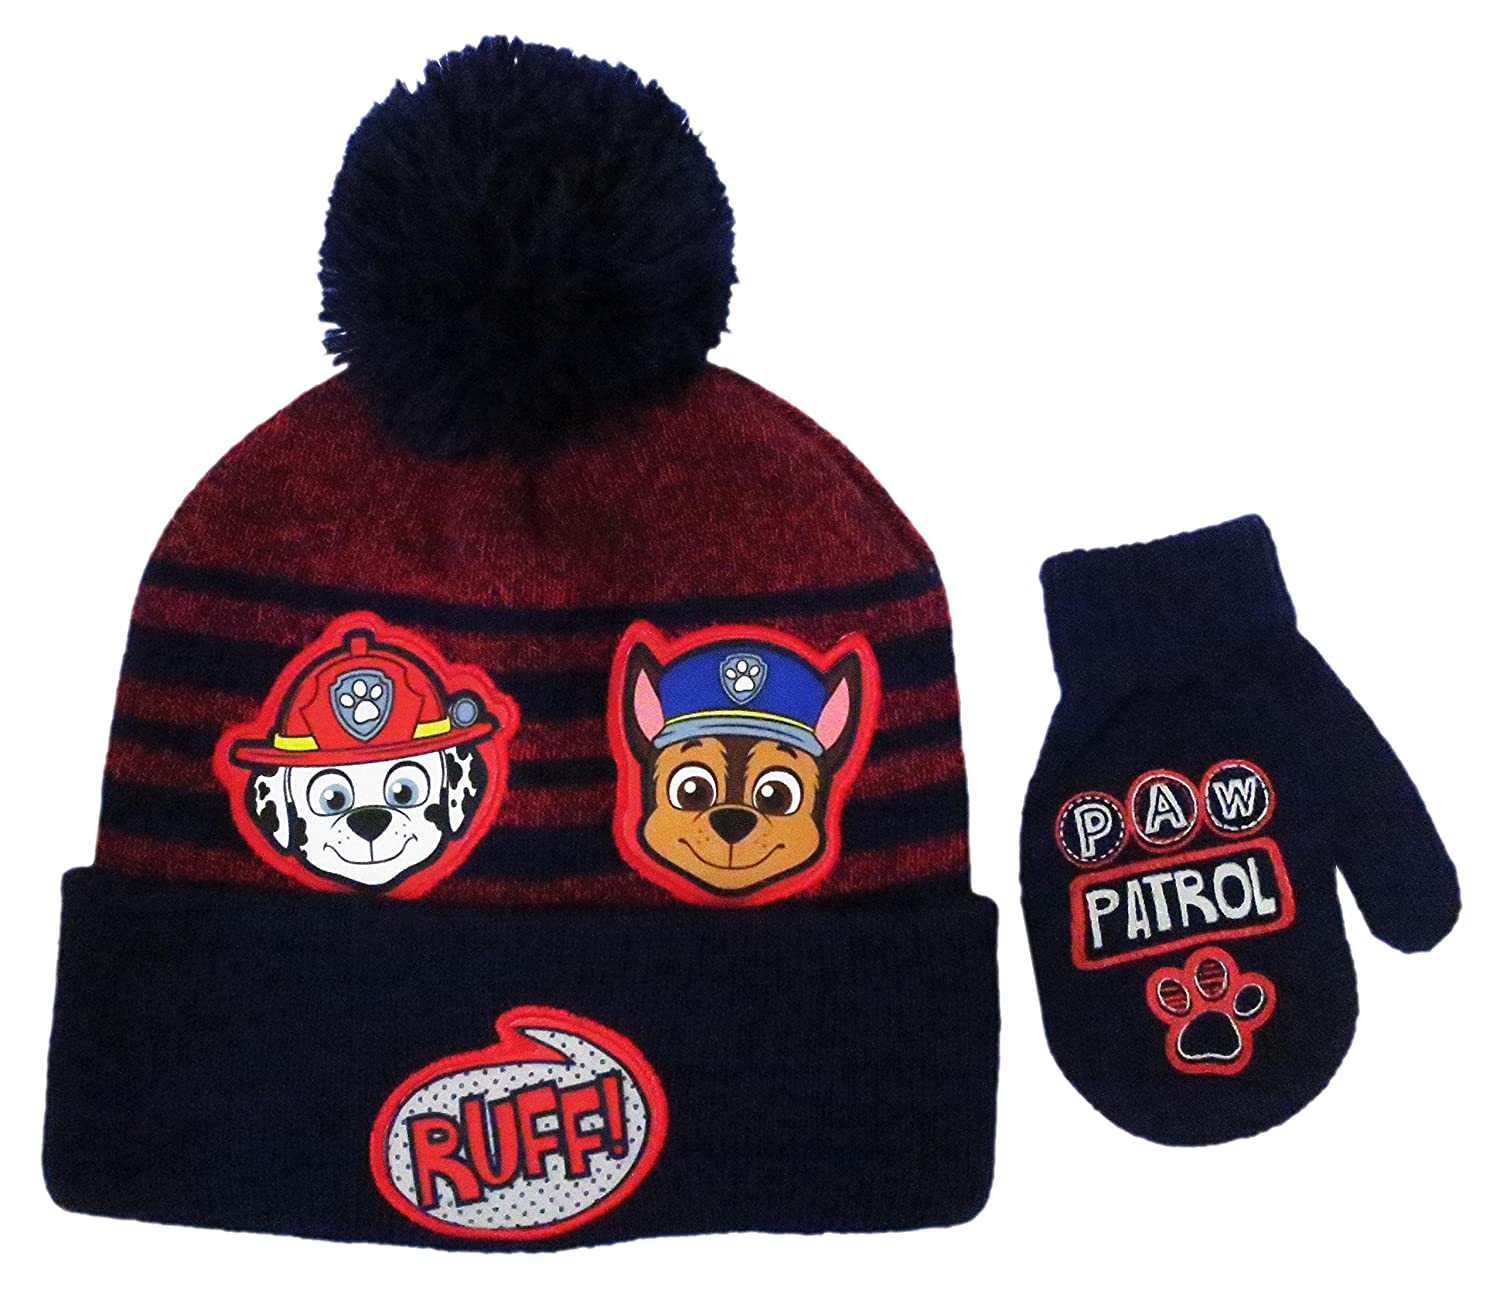 Paw Patrol Boys' Beanie & Mittens Set - navy/multi, one size